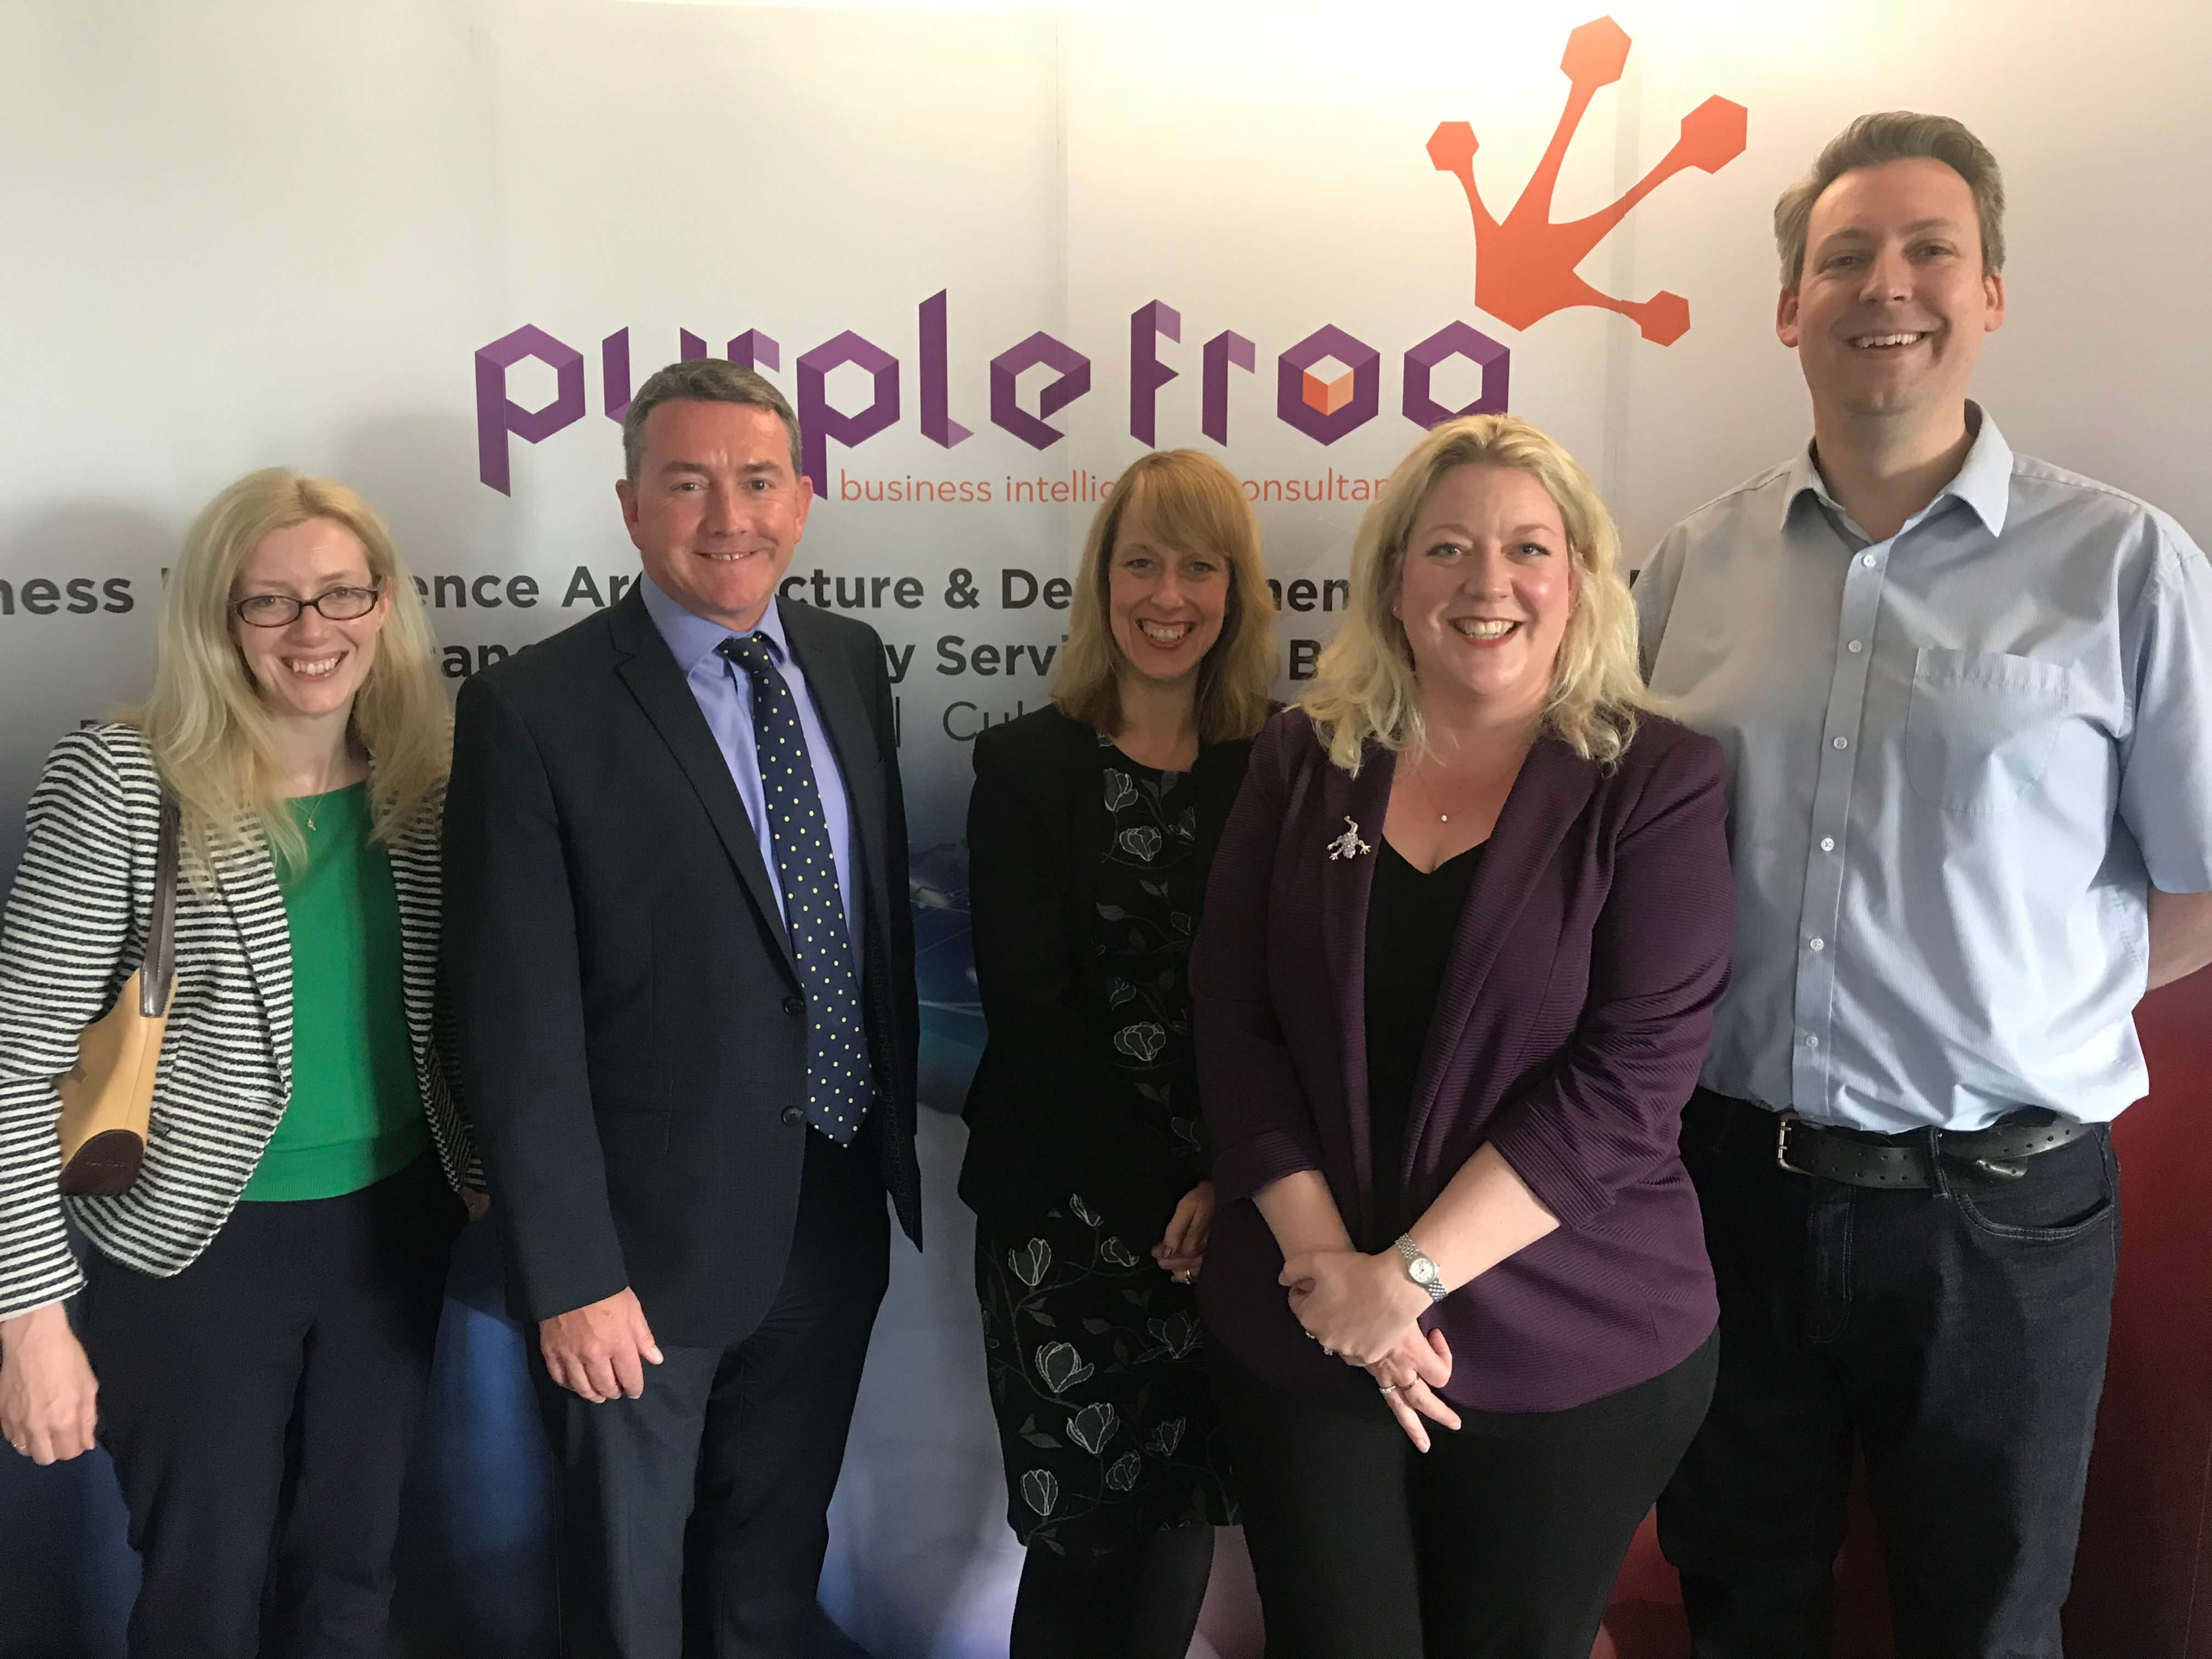 Shropshire Chamber Business Awards - Purple Frog